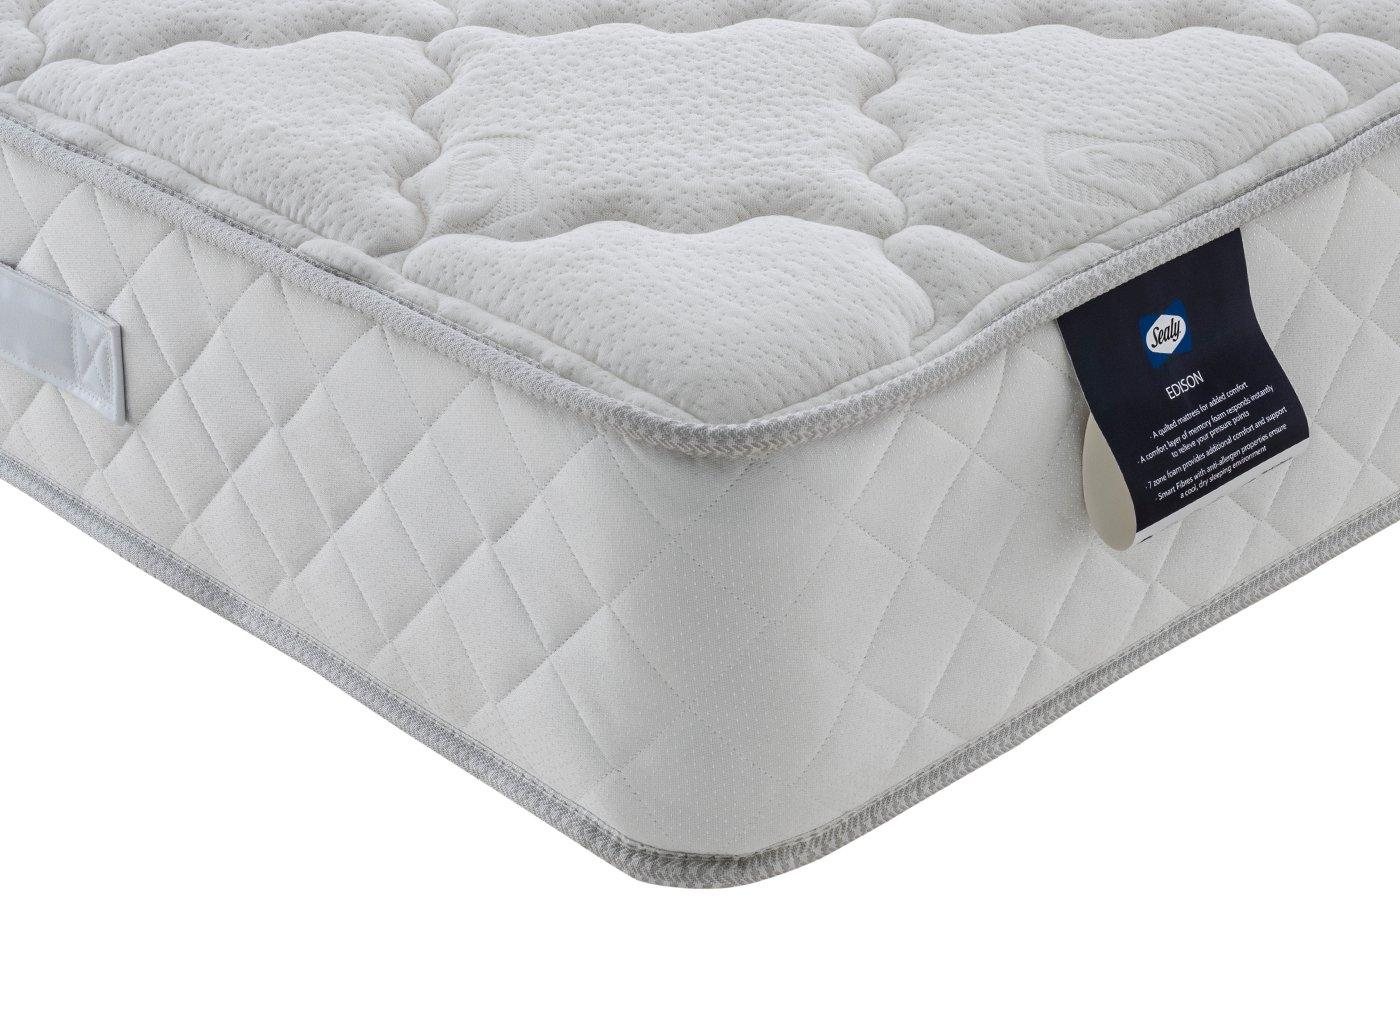 Sealy Edison D Mattress 4'6 Double